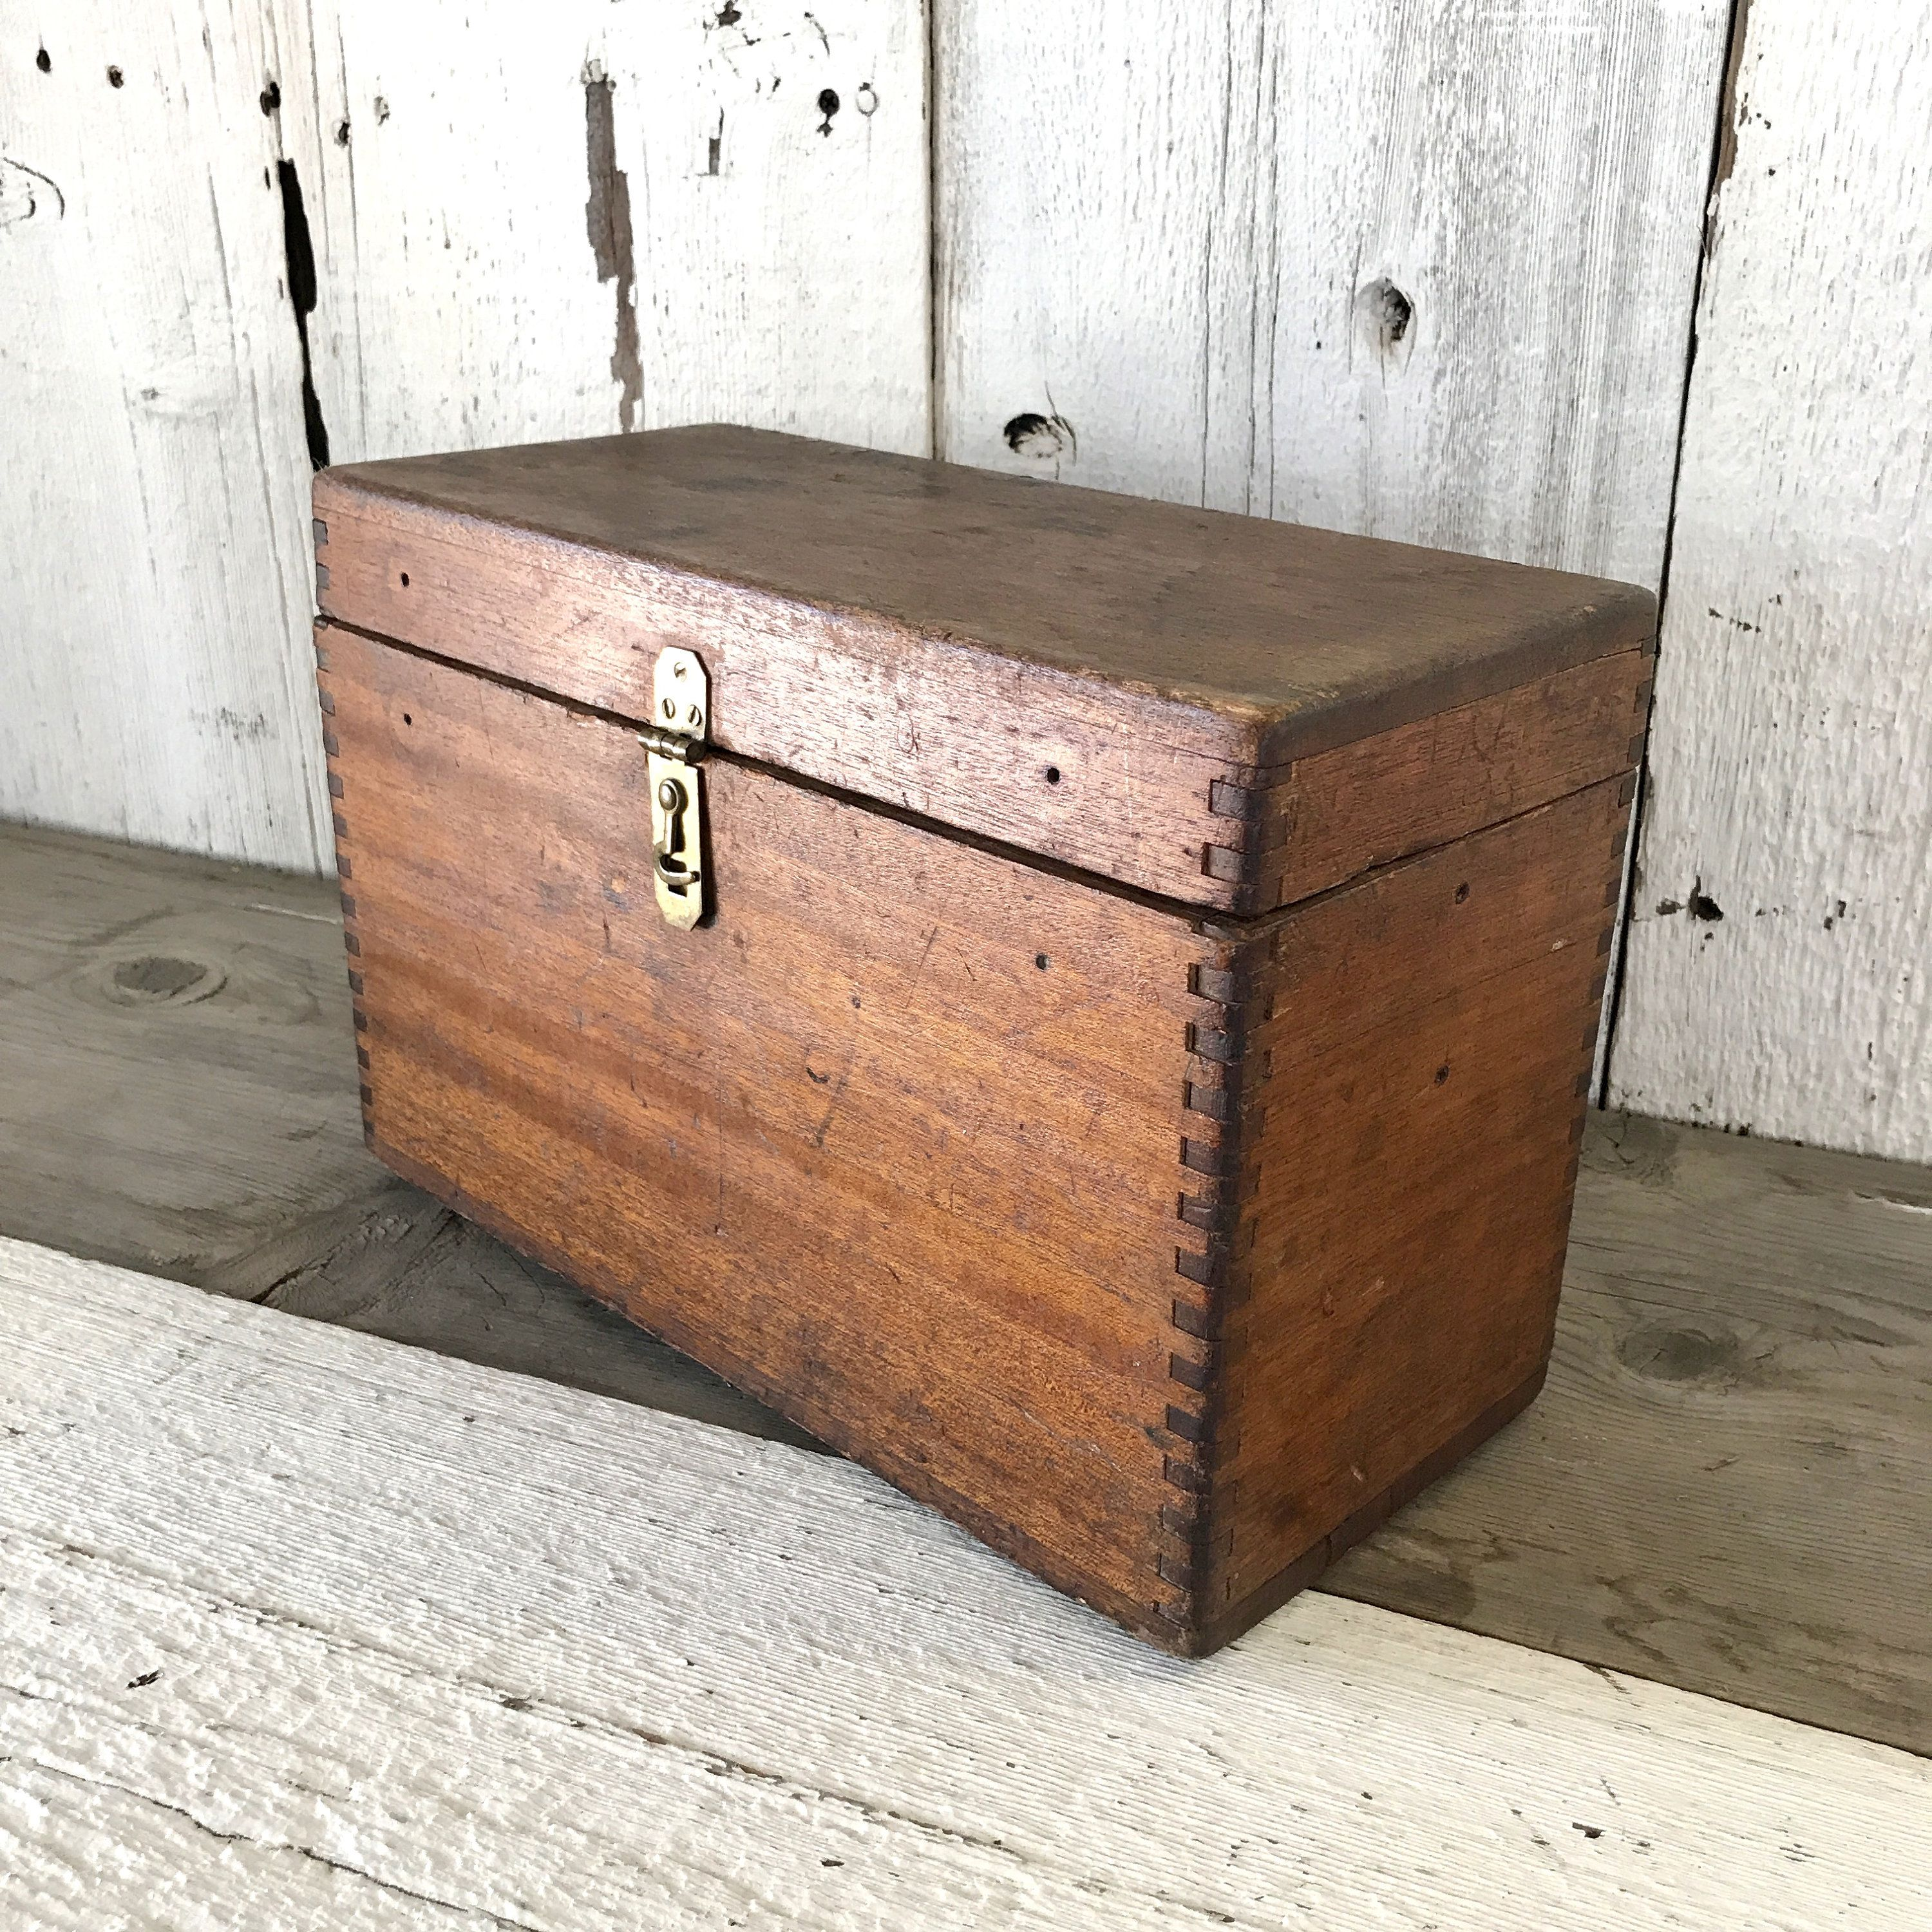 Antique Wood Tool Box With Dovetail Joints Vintage Wooden Box With Hinged Lid Machinist Tool Box Vint Wood Tool Box How To Antique Wood Vintage Boxes Wooden